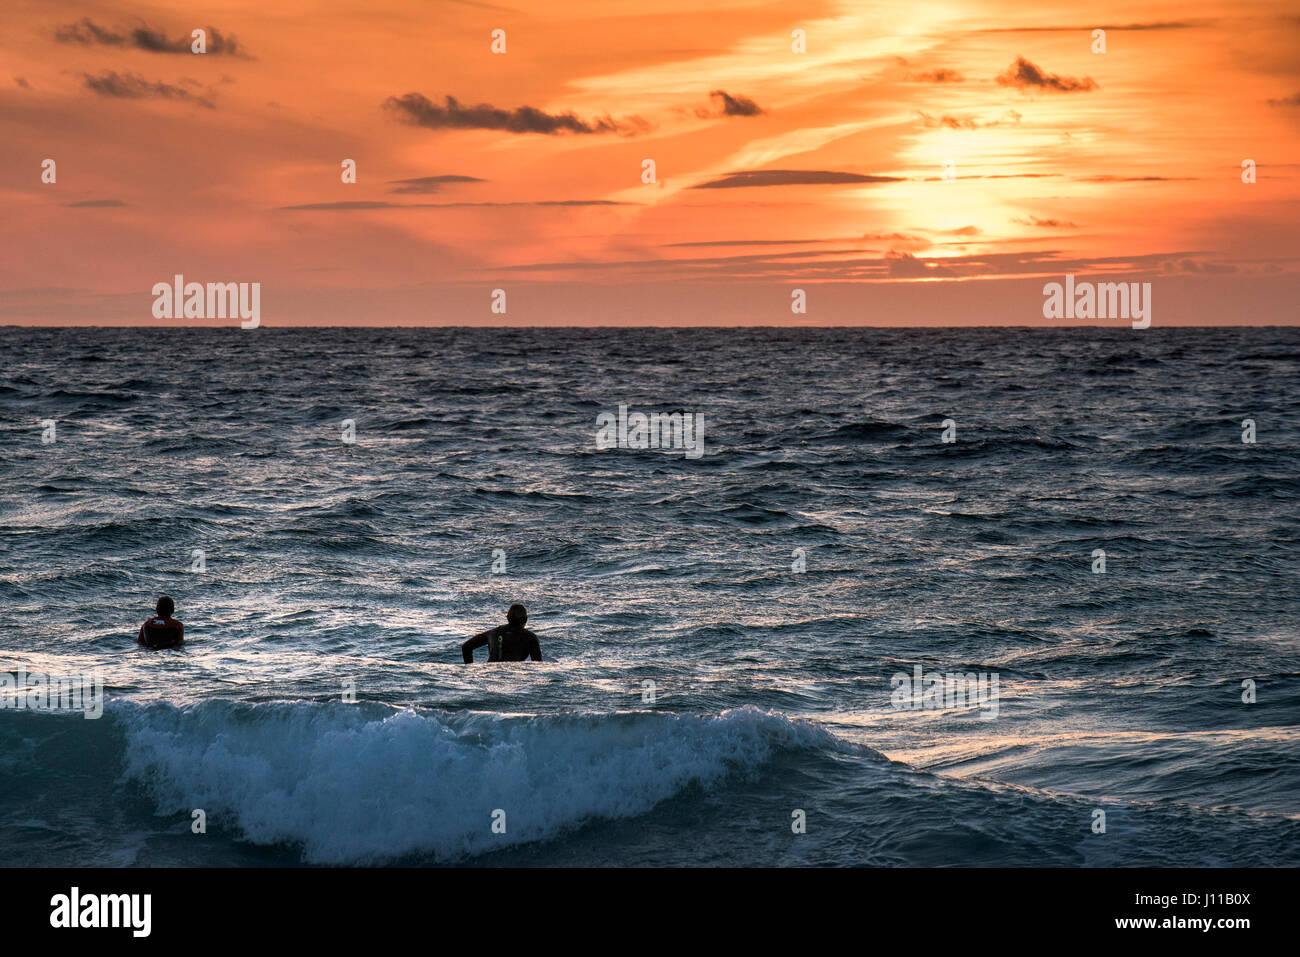 Surfing UK Surfers Waiting for a wave Sunset Intense sunset Fistral Cornwall Watersport Evening Physical activity - Stock Image